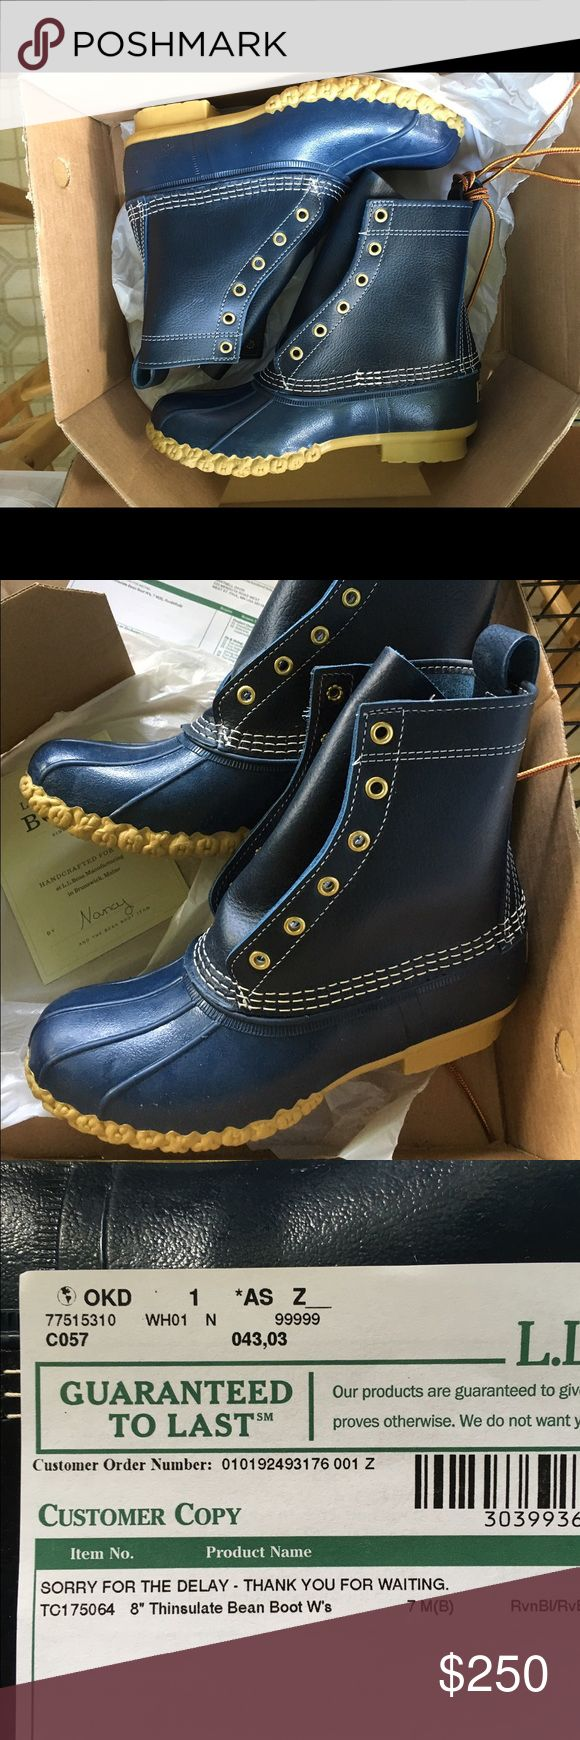 LL Bean Boots - Raven (navy) blue - size 7 Hard to find color - brand spanking new in box - perfect for the upcoming fall and winter weather! L.L. Bean Shoes Winter & Rain Boots